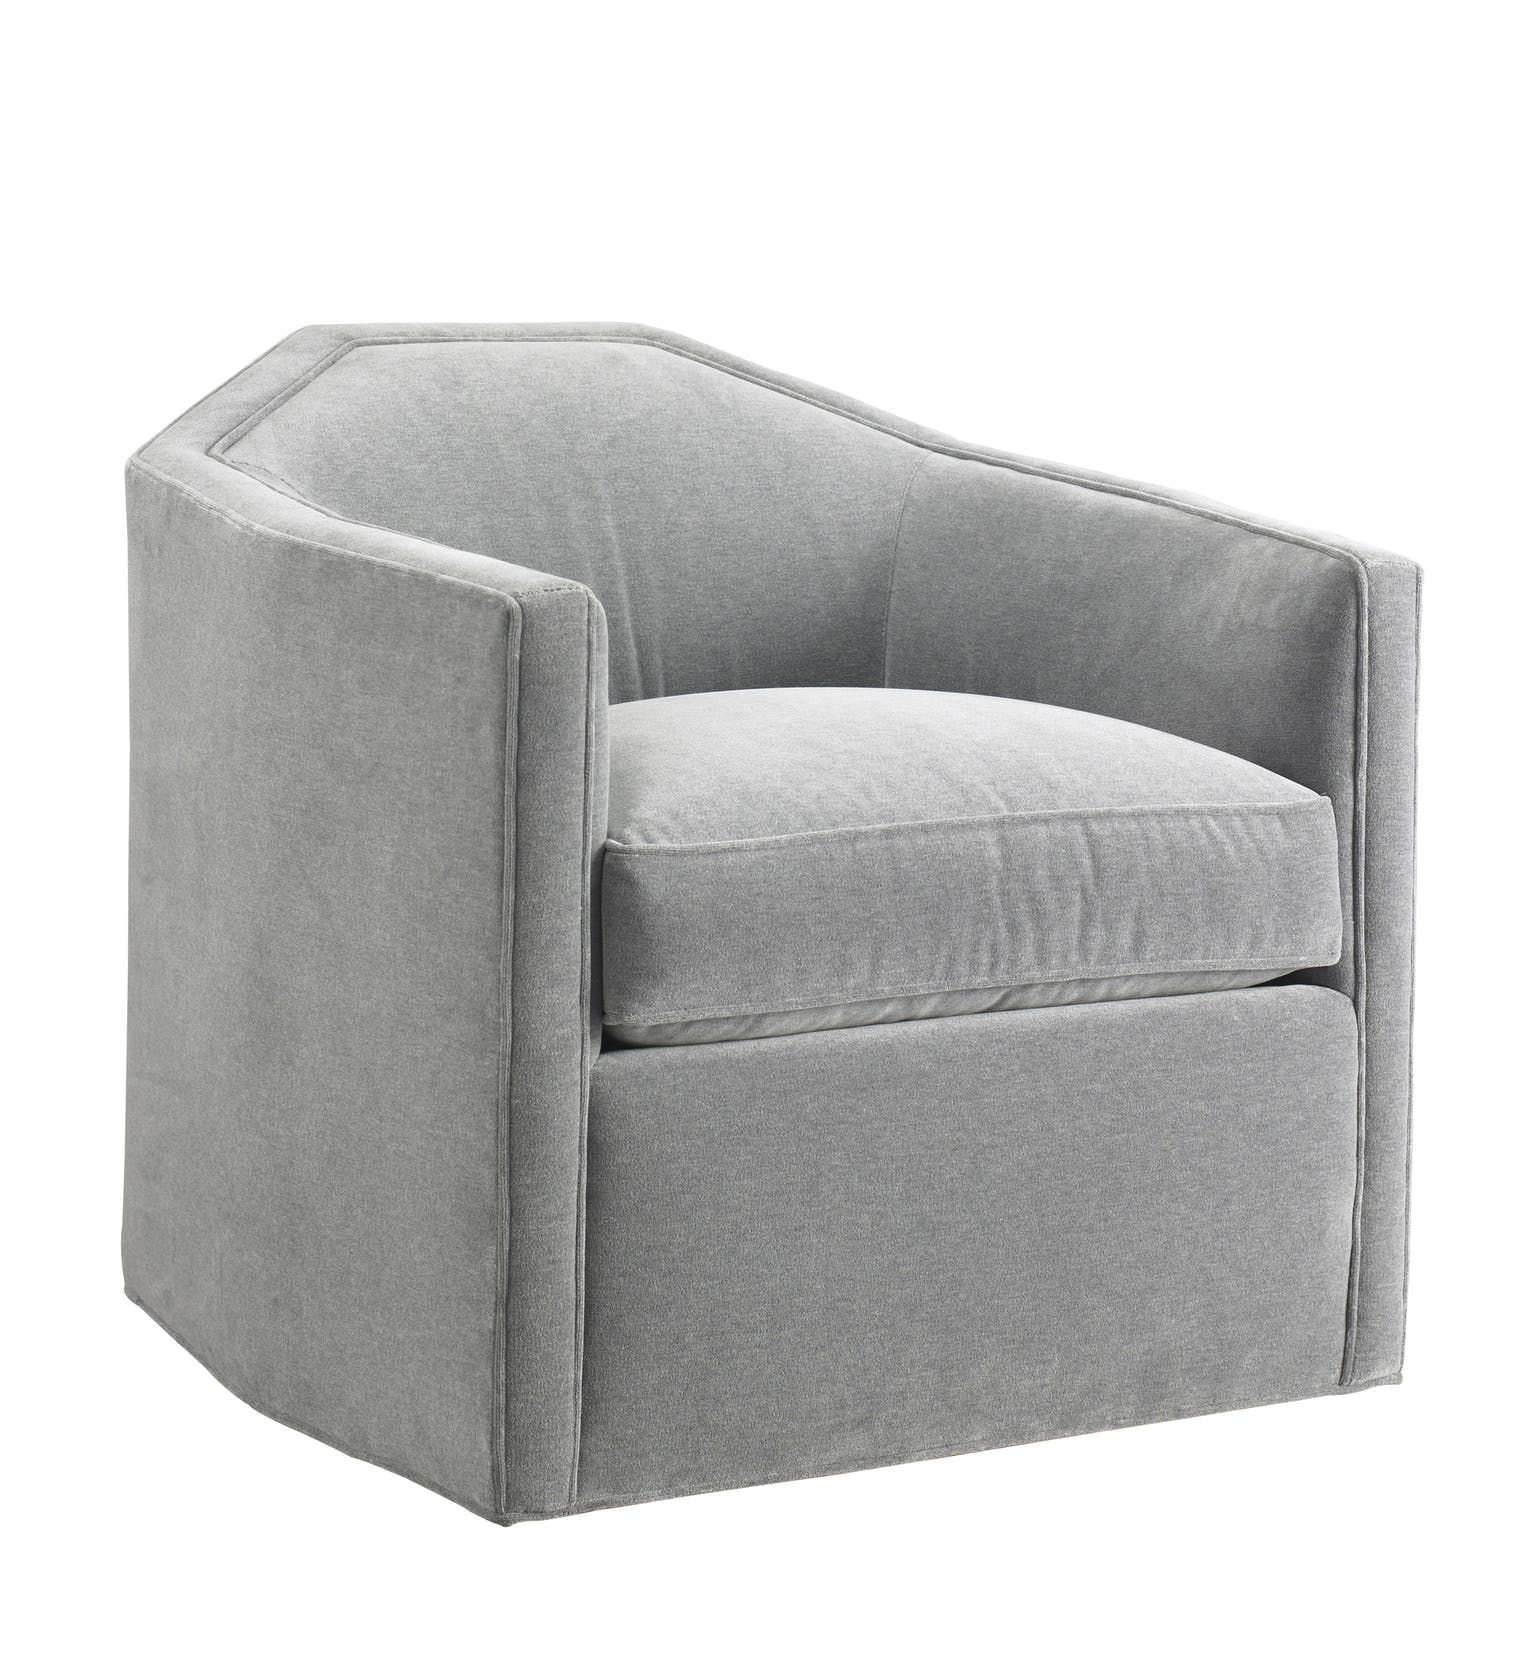 Contemporary Grey Velvet Upholstered Swivel Chair | Upholstered With Regard To Circuit Swivel Accent Chairs (Image 6 of 20)